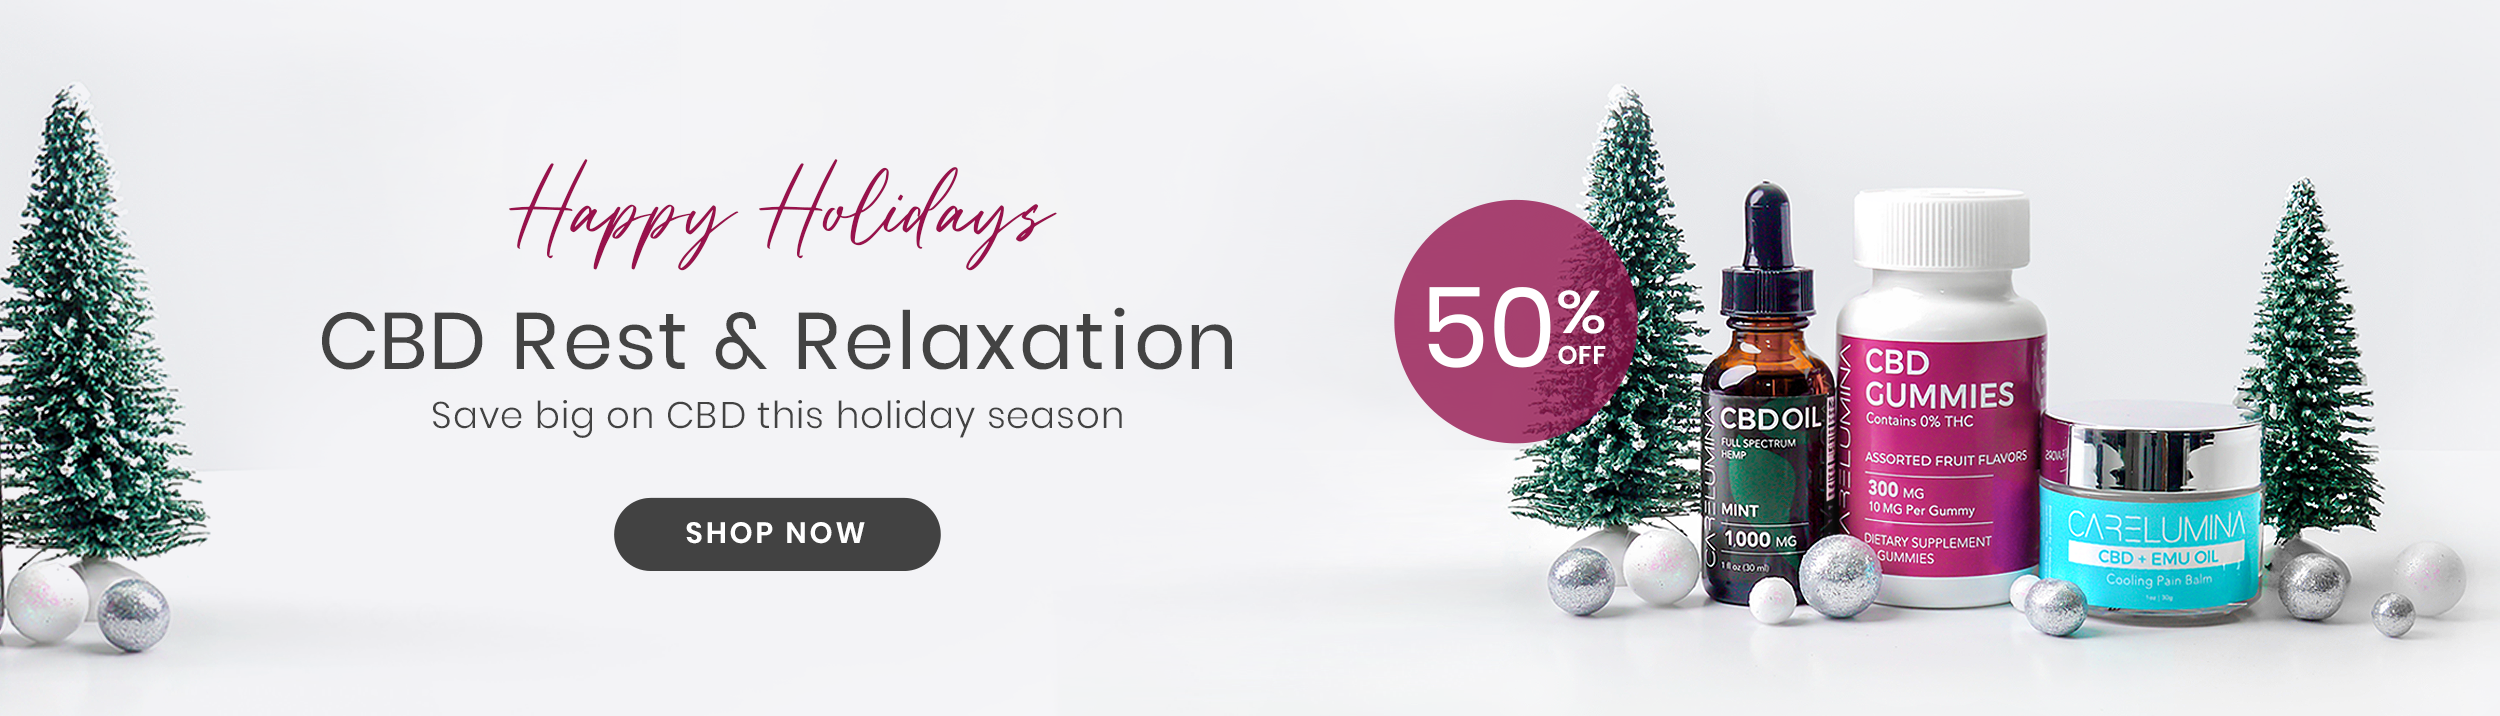 21432907671606364659_Holiday Banner_CBD.png